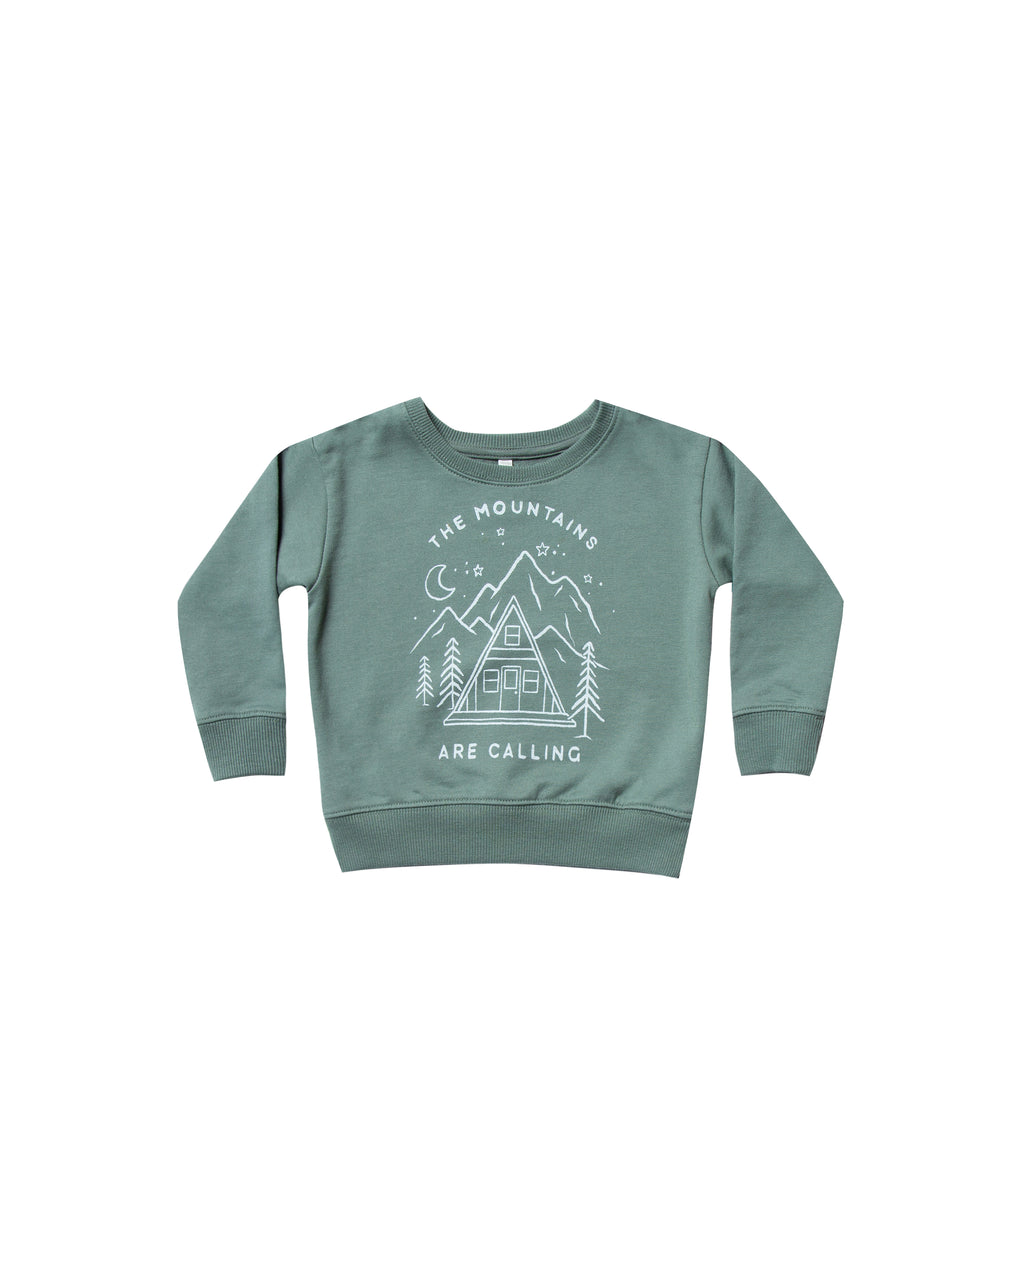 Rylee & Cru Mountains are Calling Sweatshirt